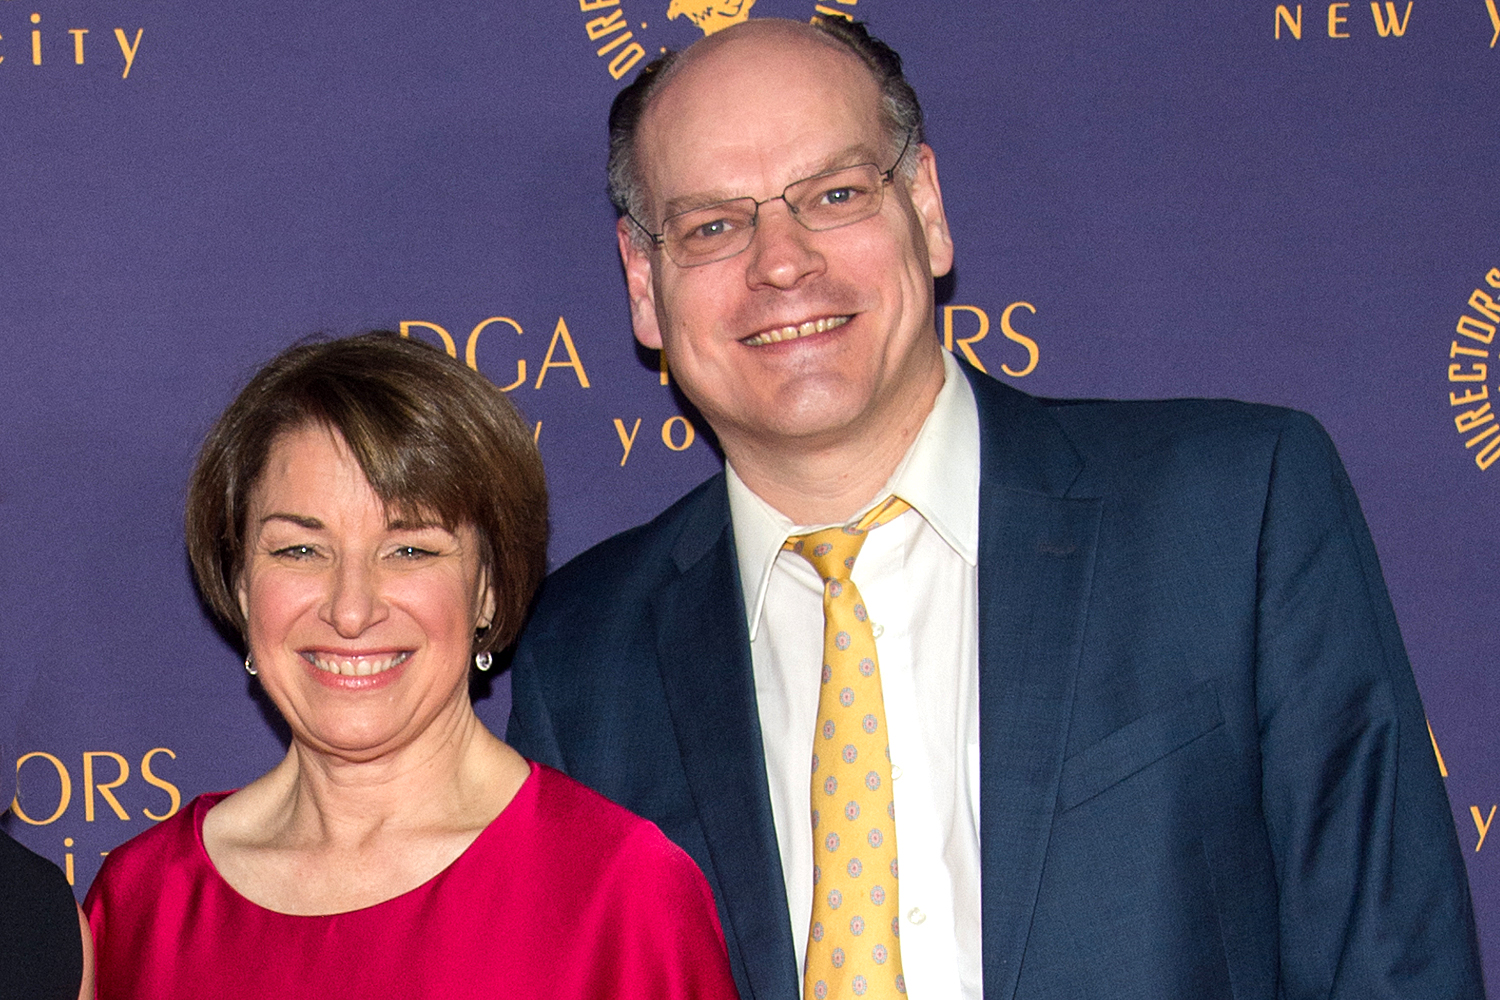 Amy Klobuchar and John Bessler